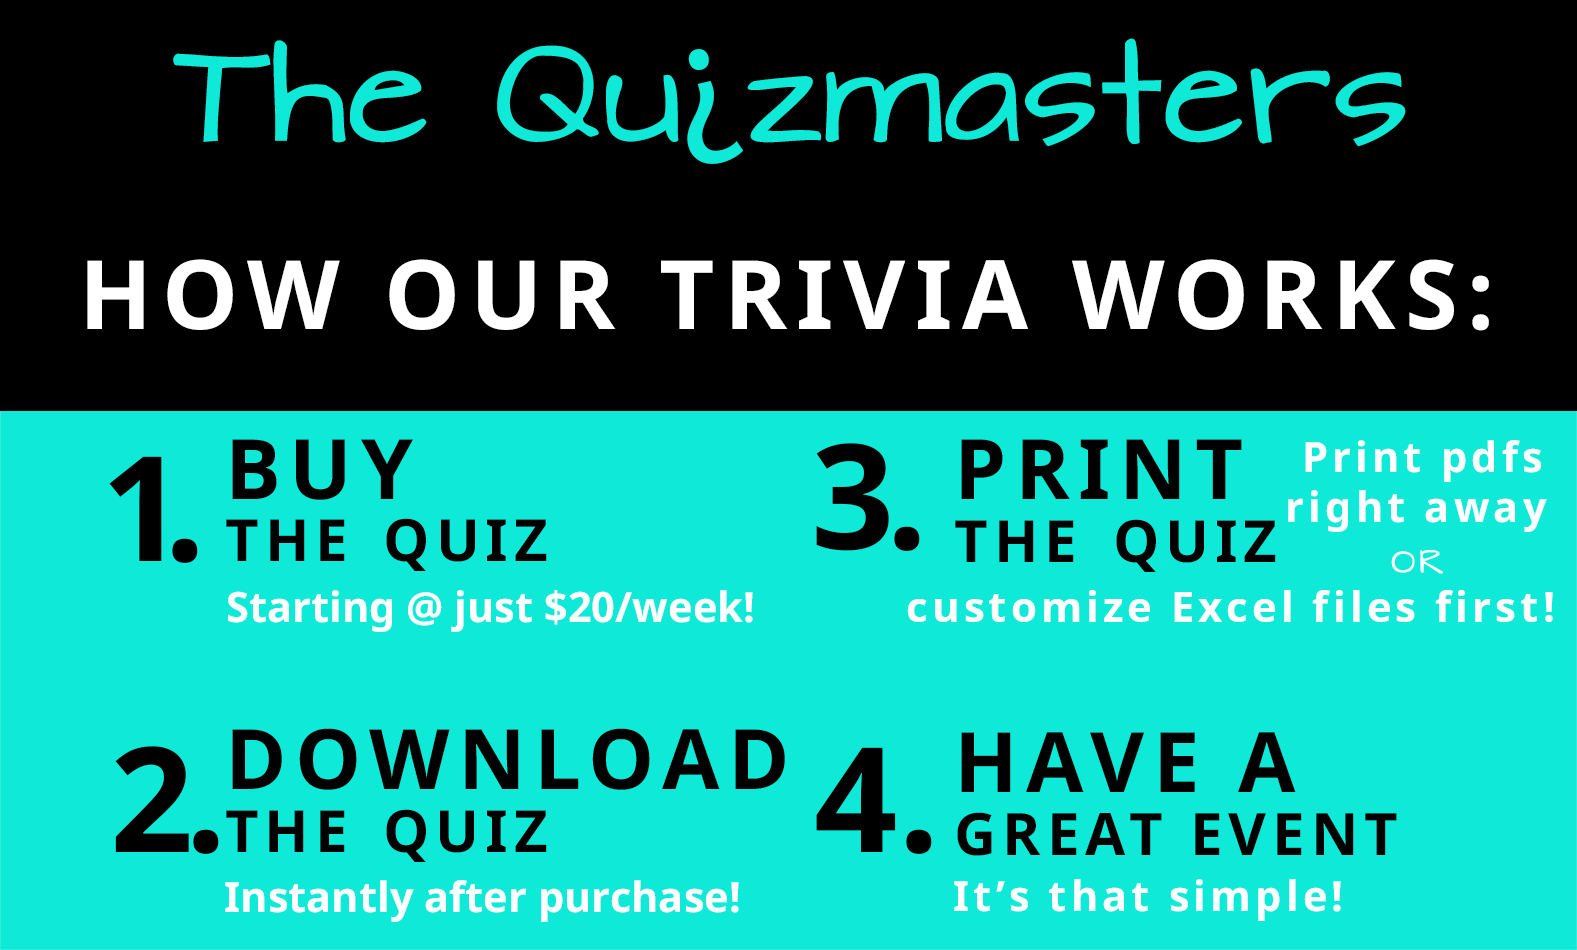 how quiz works . Buy the quiz, download the quiz, print the quiz, have a great event! The Quizmasters How Trivia Works